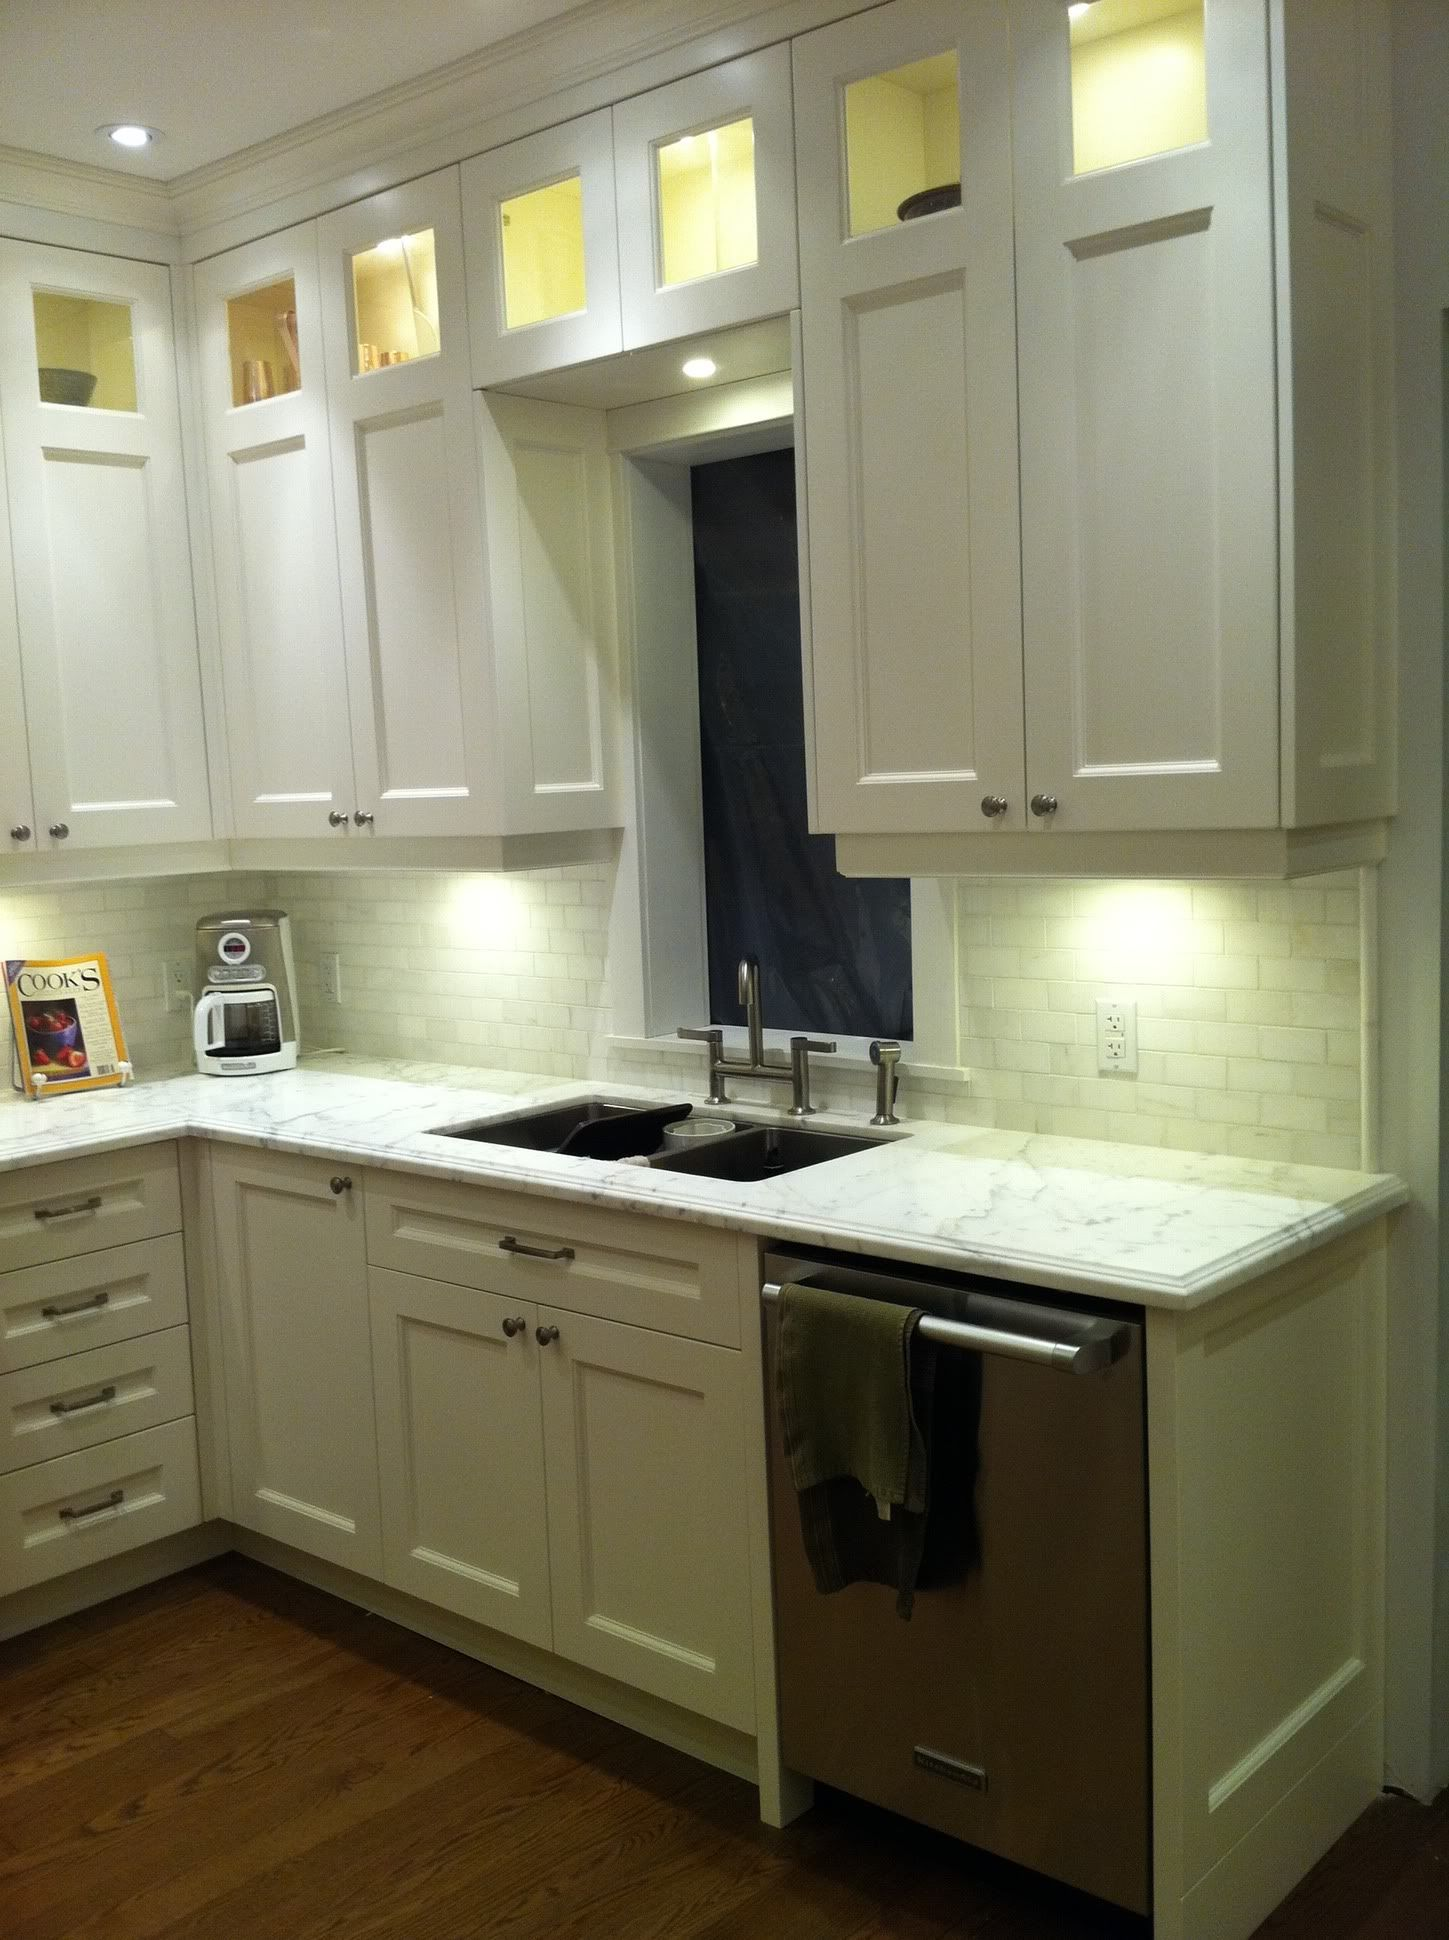 Explore Gallery Of 9 Ft Ceiling Kitchen Cabinets 3 Of 12 Kitchen Cabinets To Ceiling Upper Kitchen Cabinets Best Kitchen Cabinets